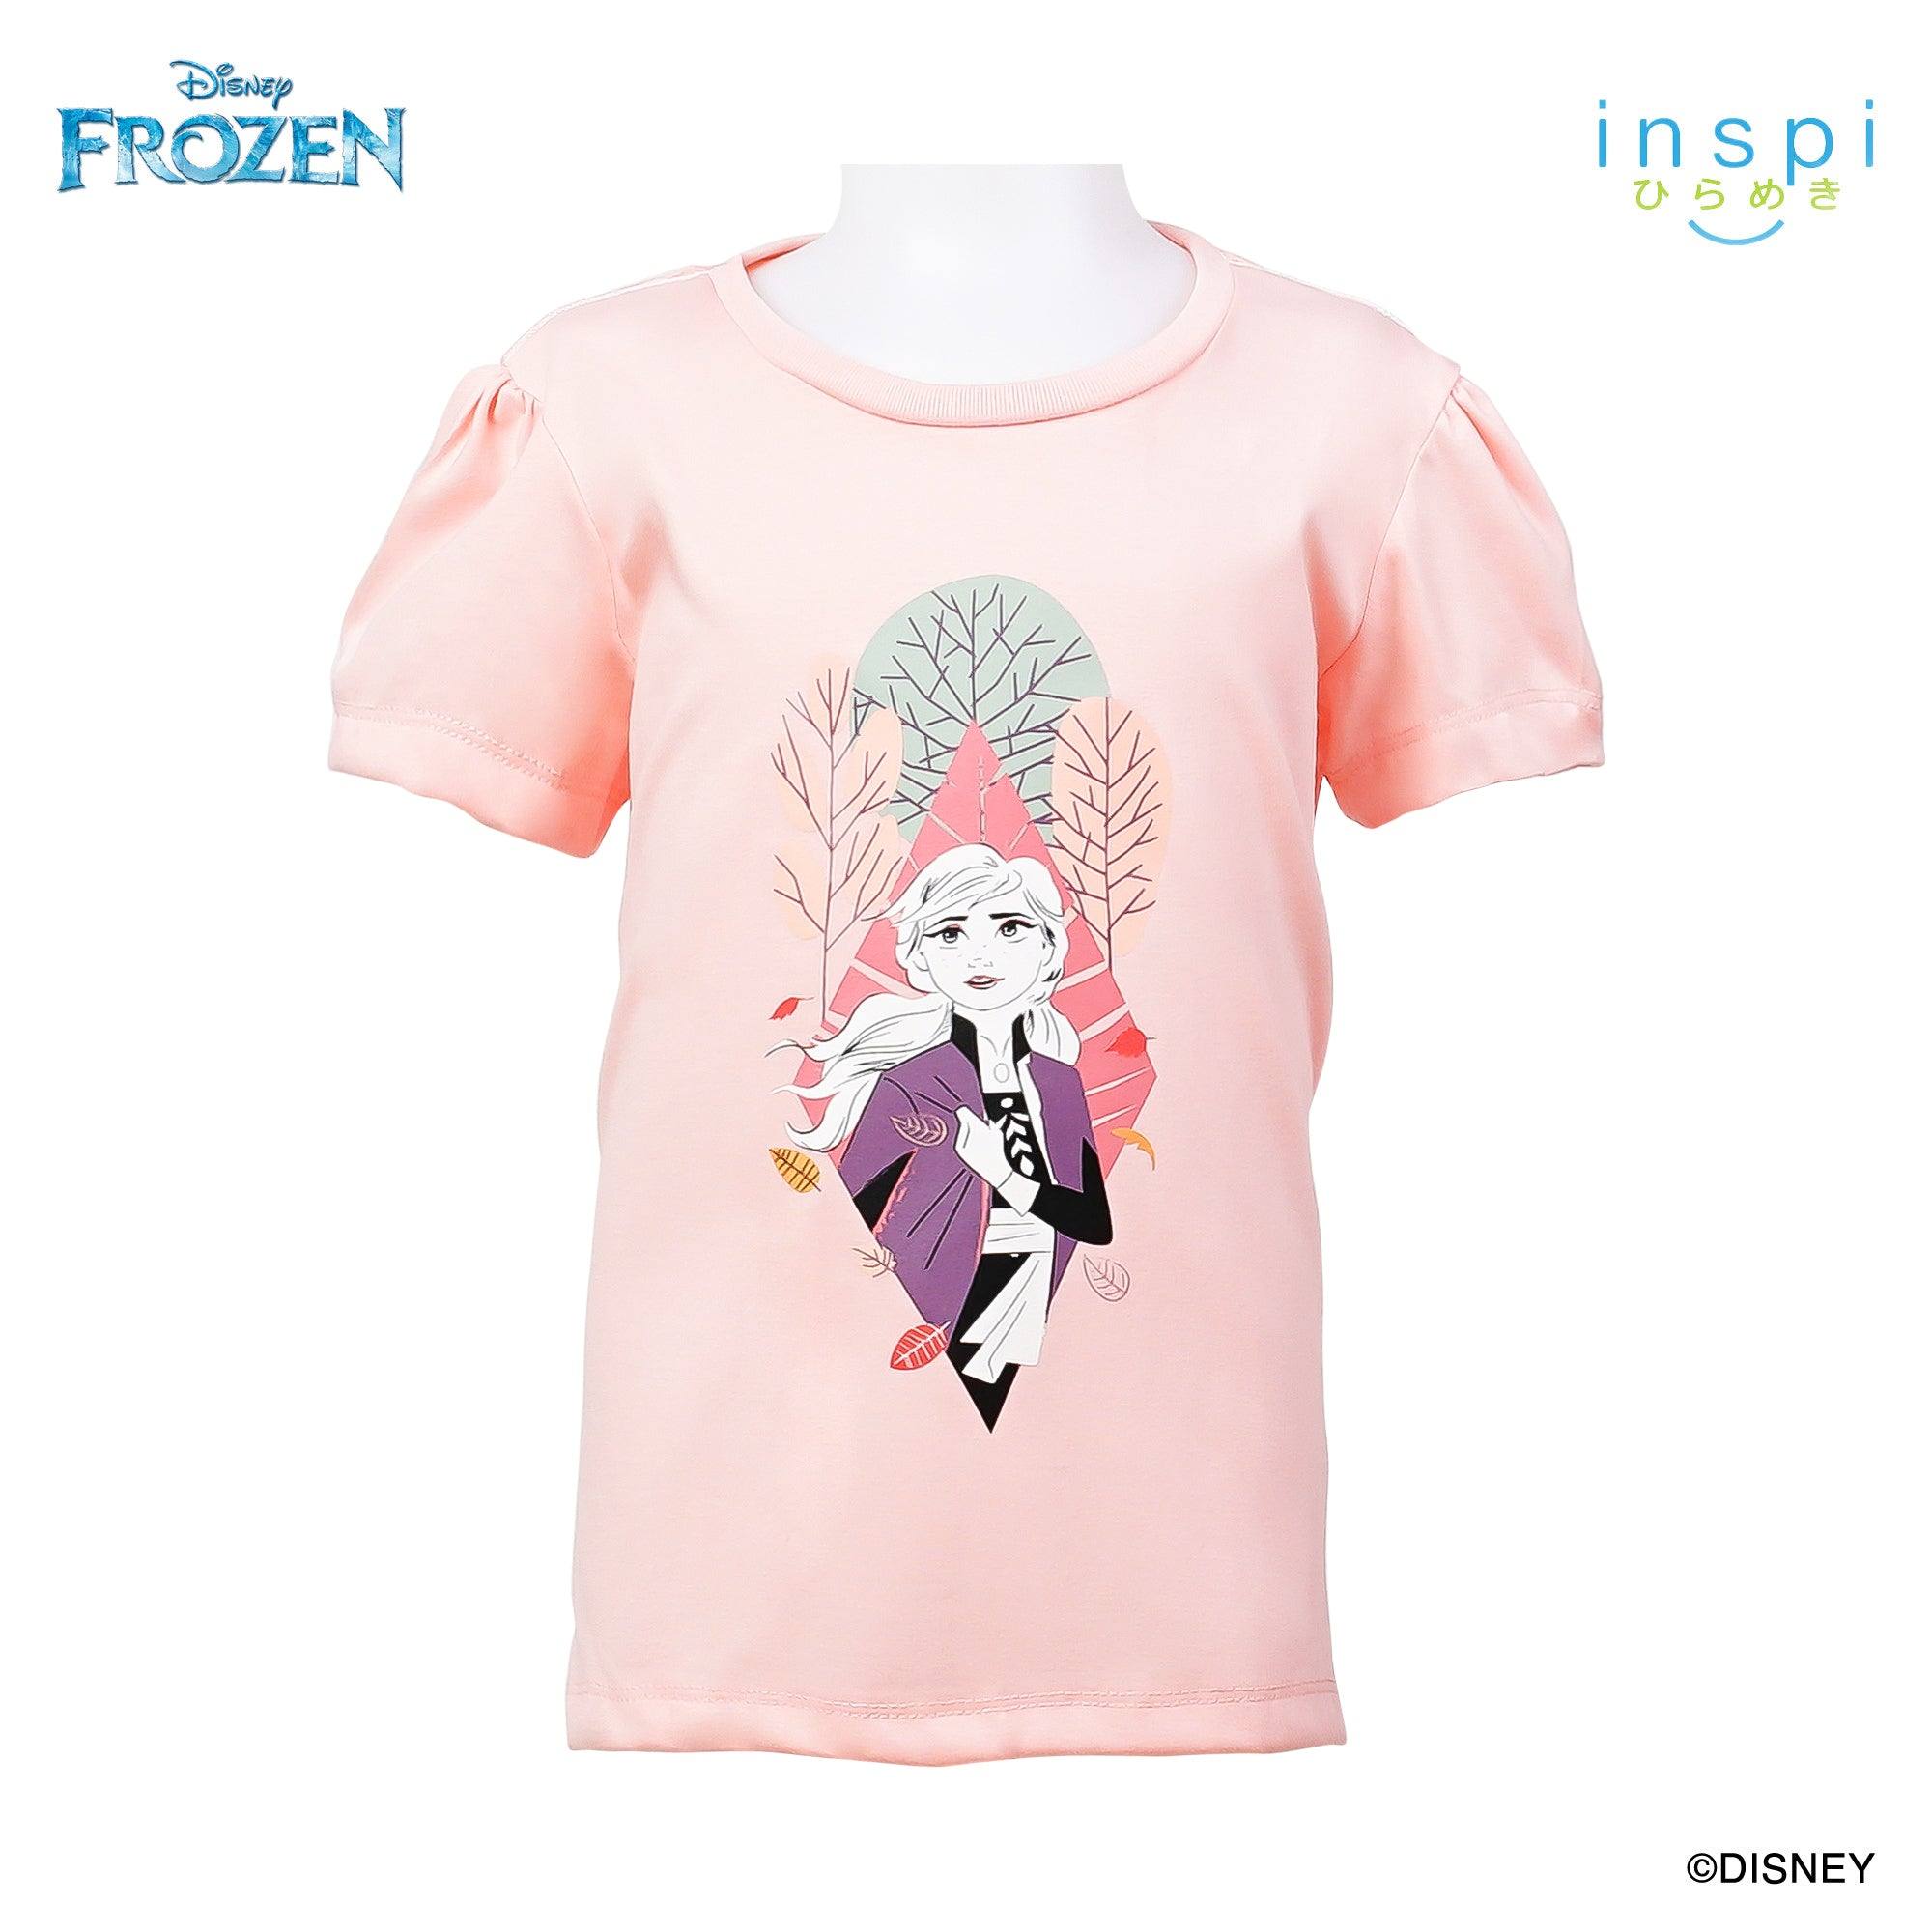 Disney Frozen Anna in Autumn Season in Dairy Peach Inspi Shirt for Girls